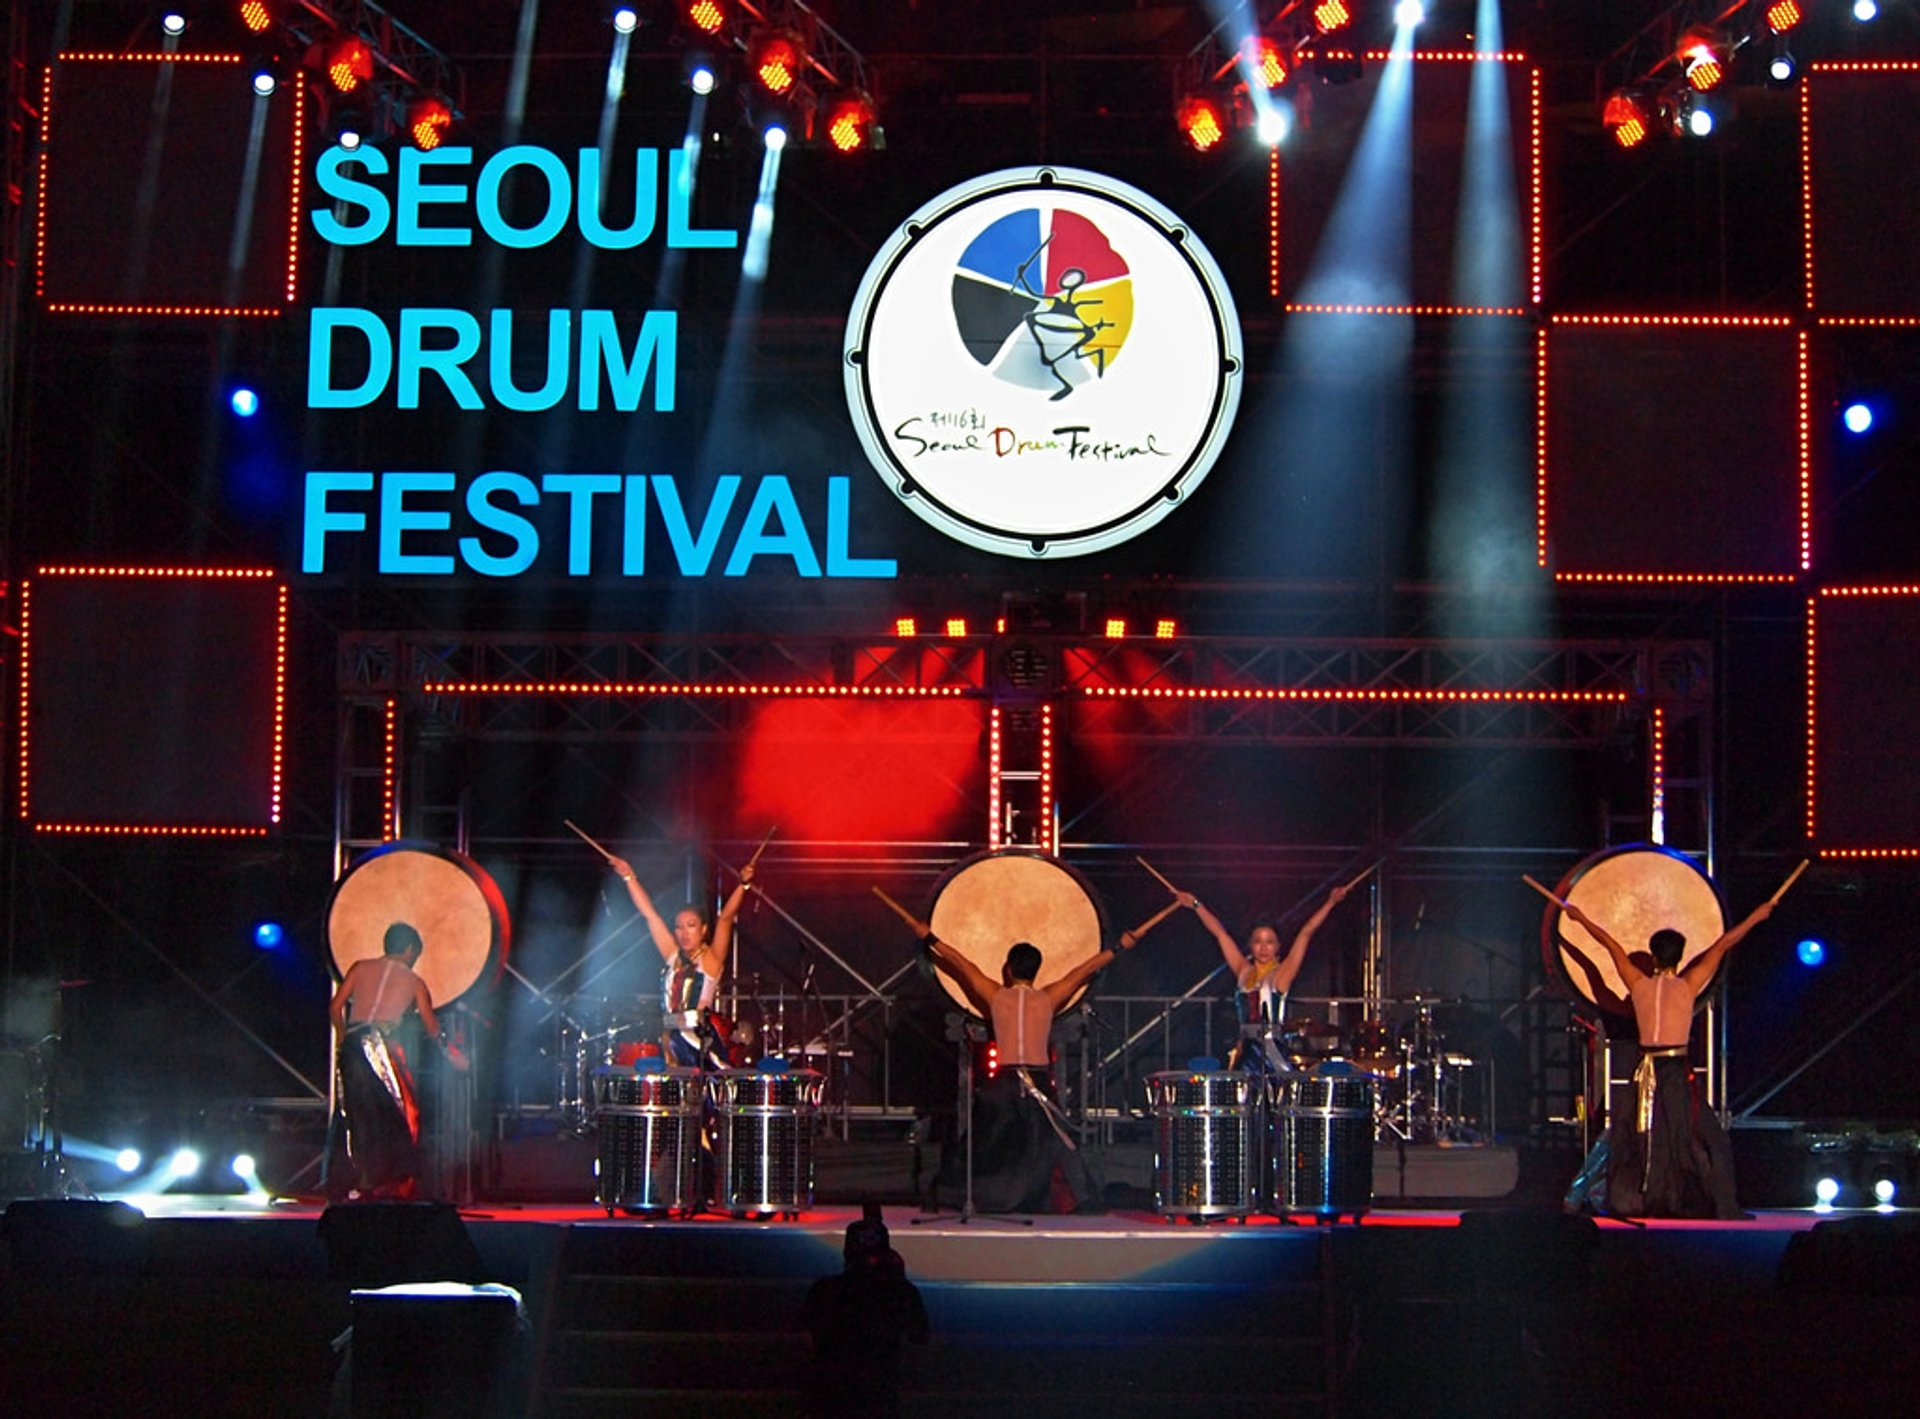 Seoul Drum Festival in Seoul 2020 - Best Time